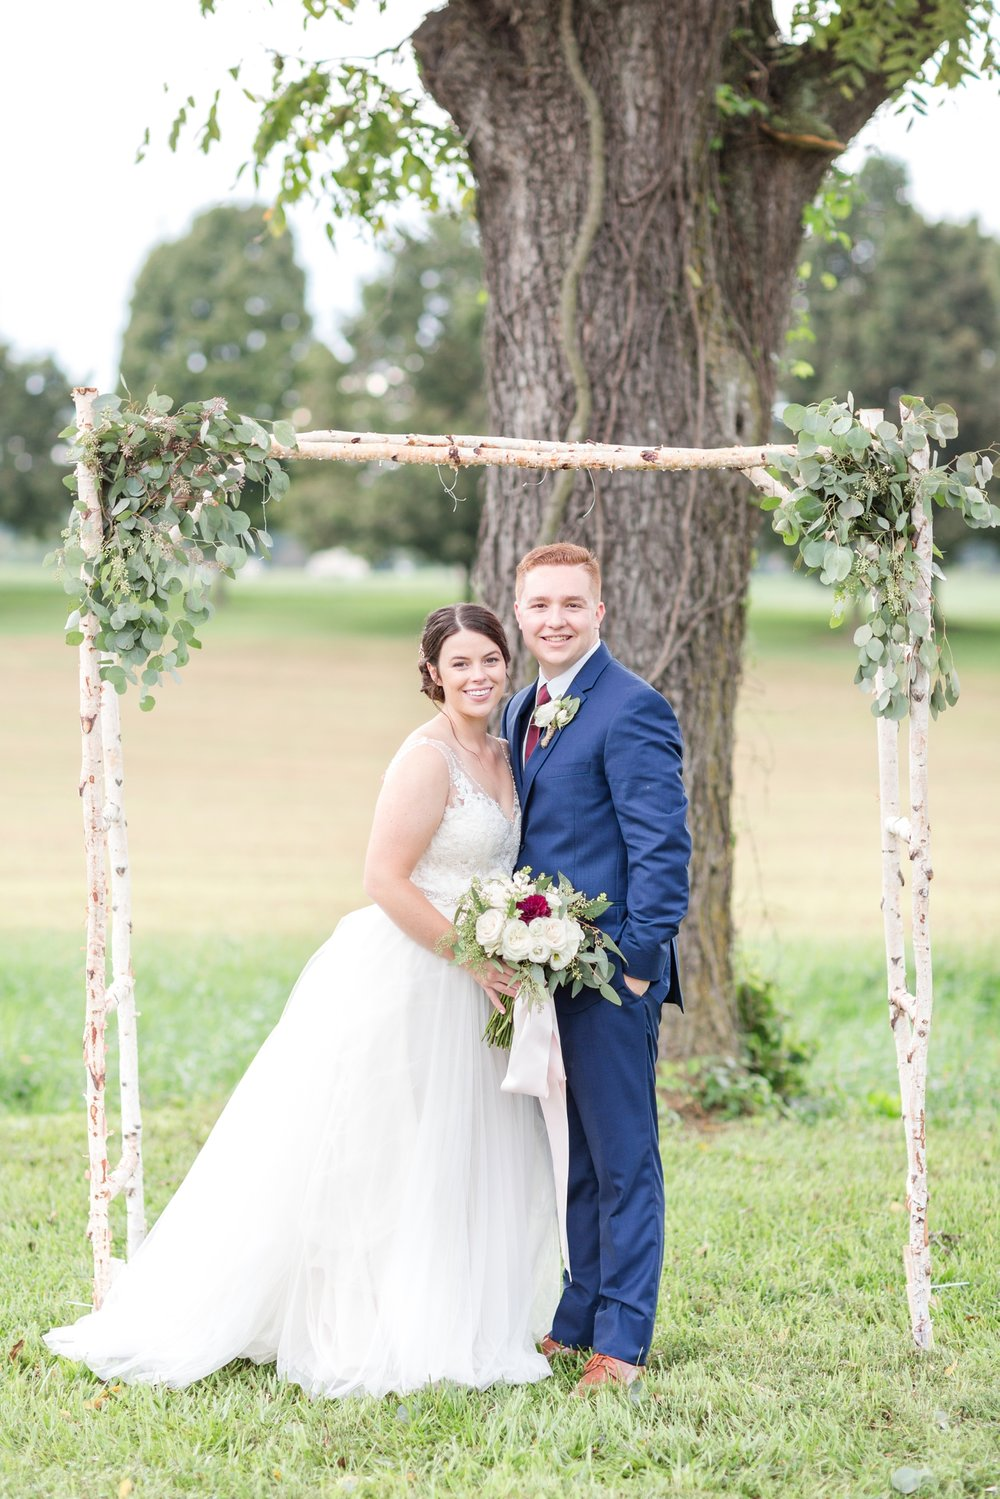 This was the arch Mark and Shelby were planning on getting married under until it rained and they had to move the ceremony inside. We had to get some pictures under it because it was so cute!